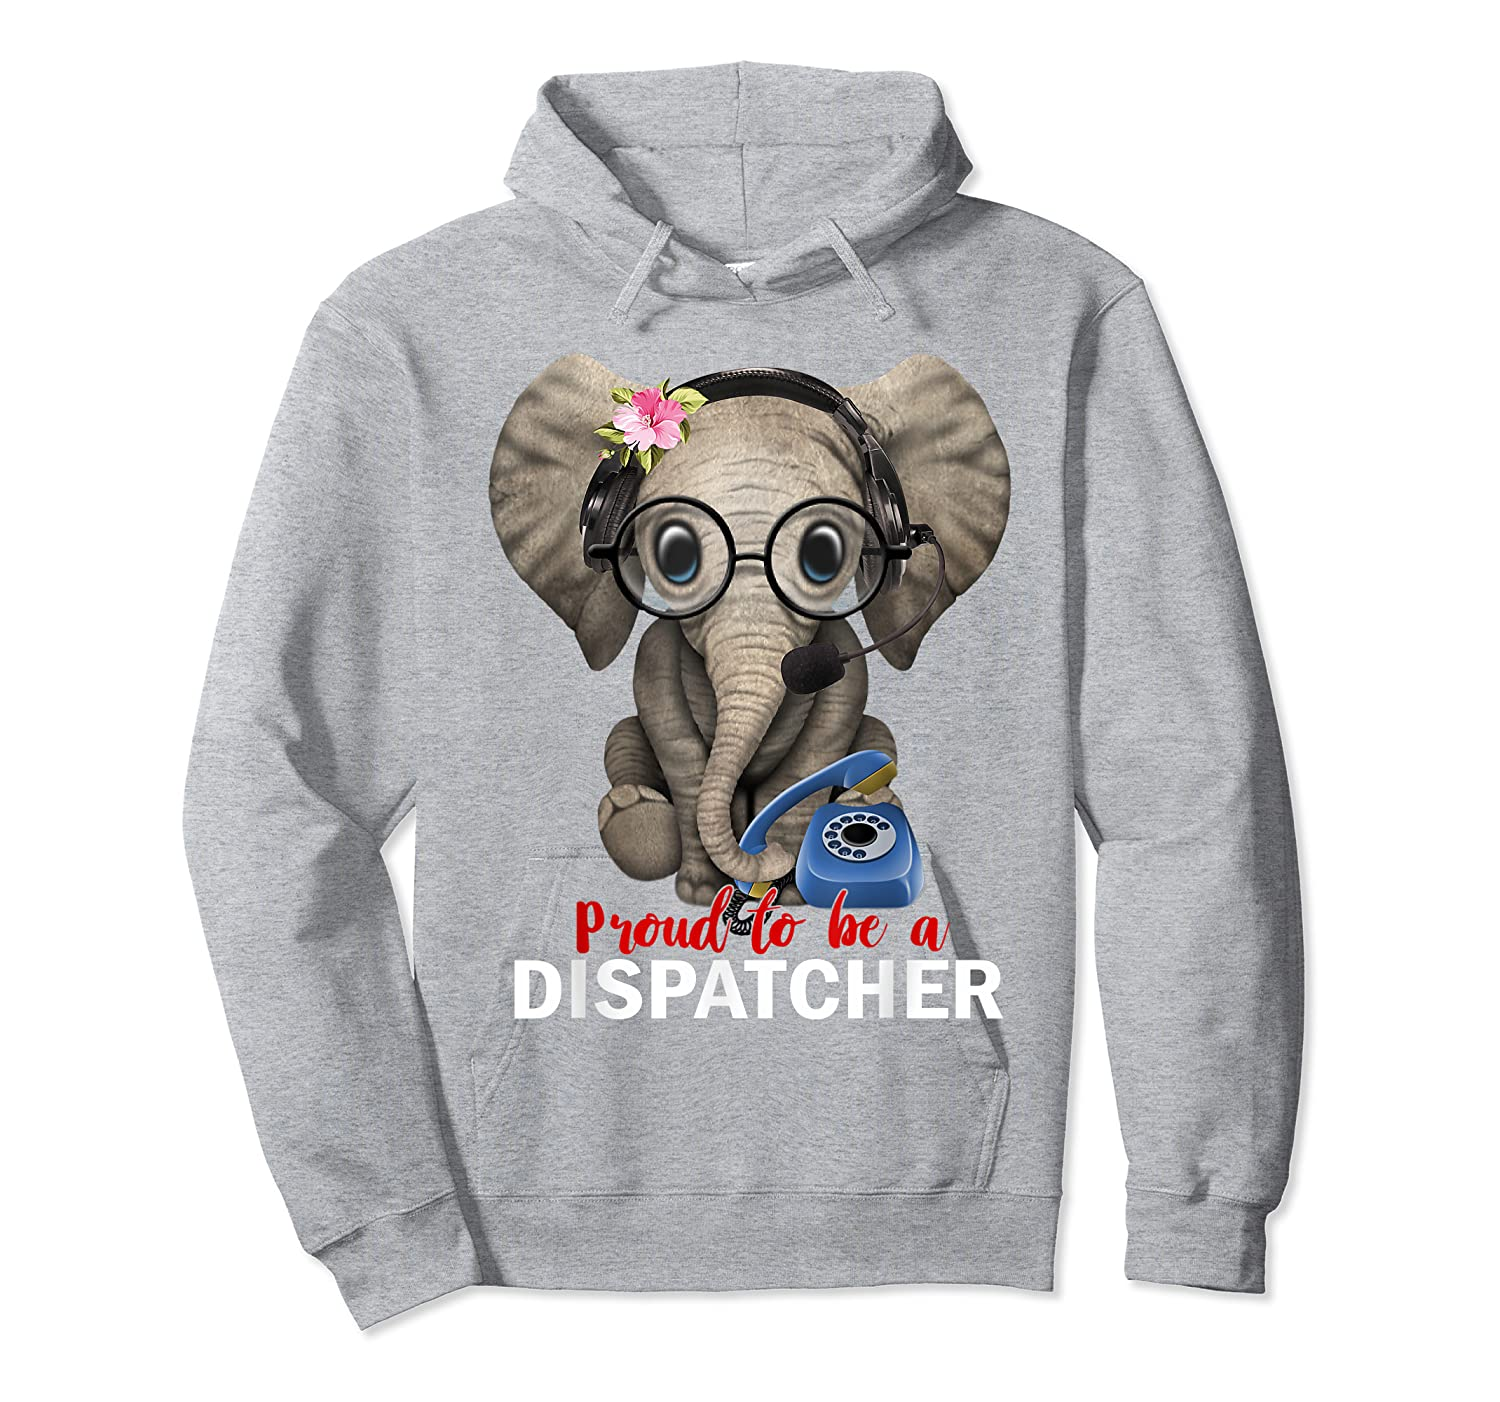 [Recommended] Proud To Be A Dispatcher Elephant Tshirt Dispatcher Gifts  Young/ Short/Long Sleeve Shirt/Hoodie